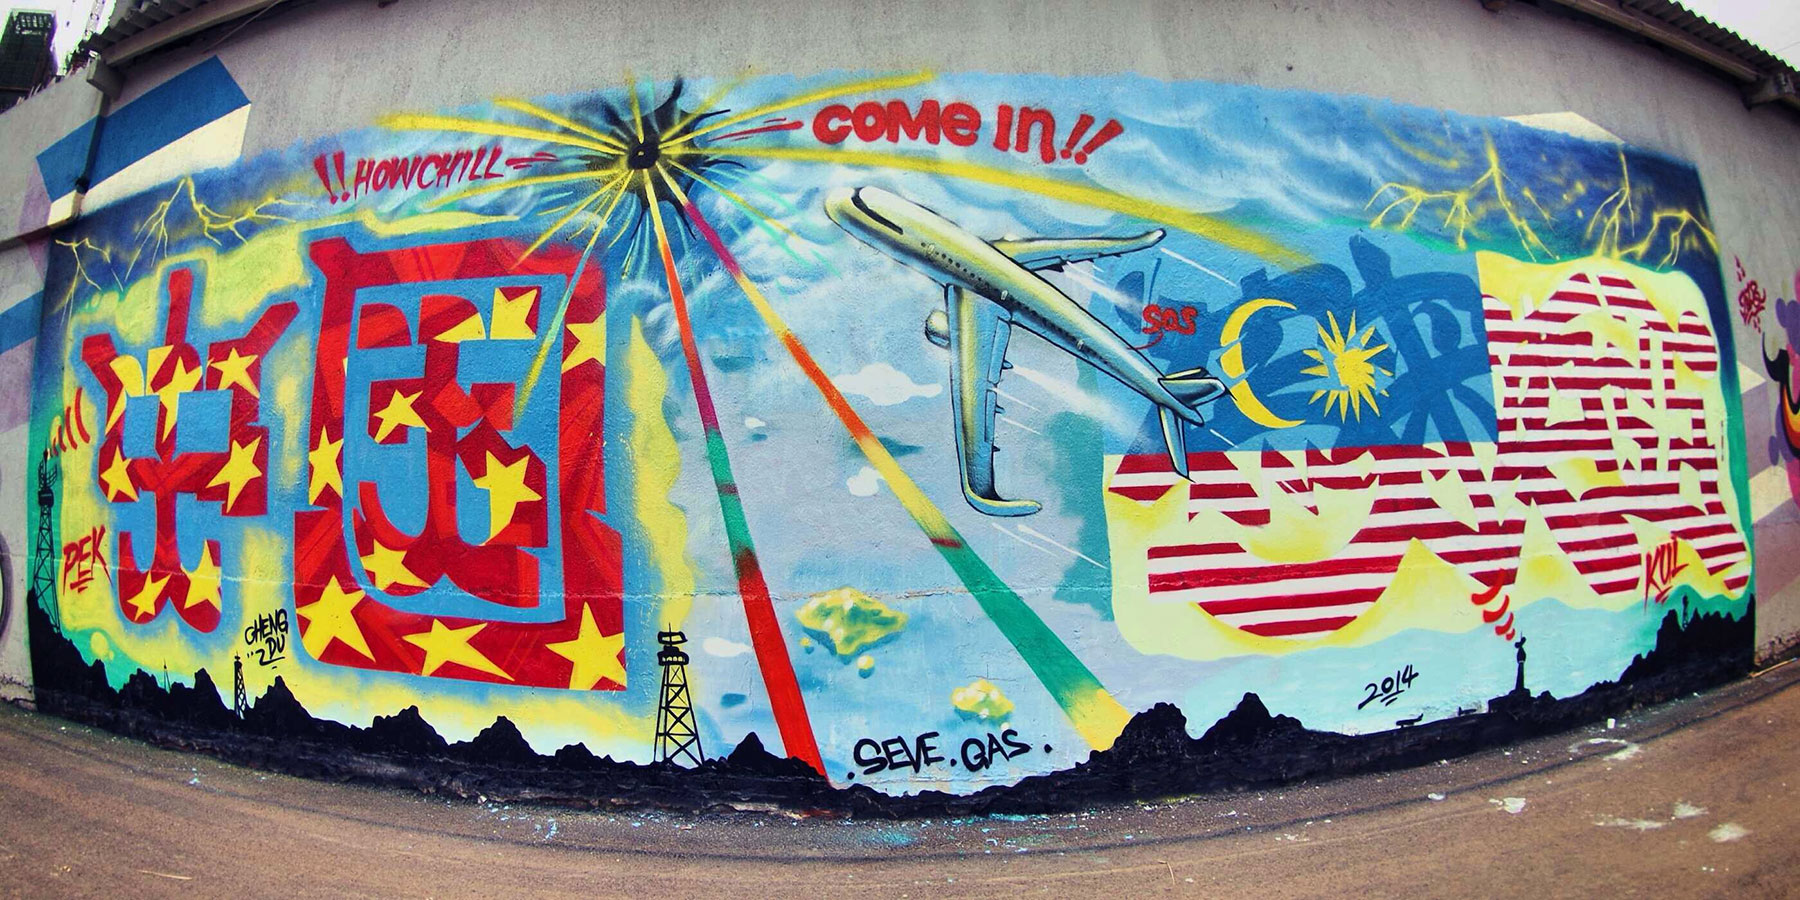 MH370 Graffiti